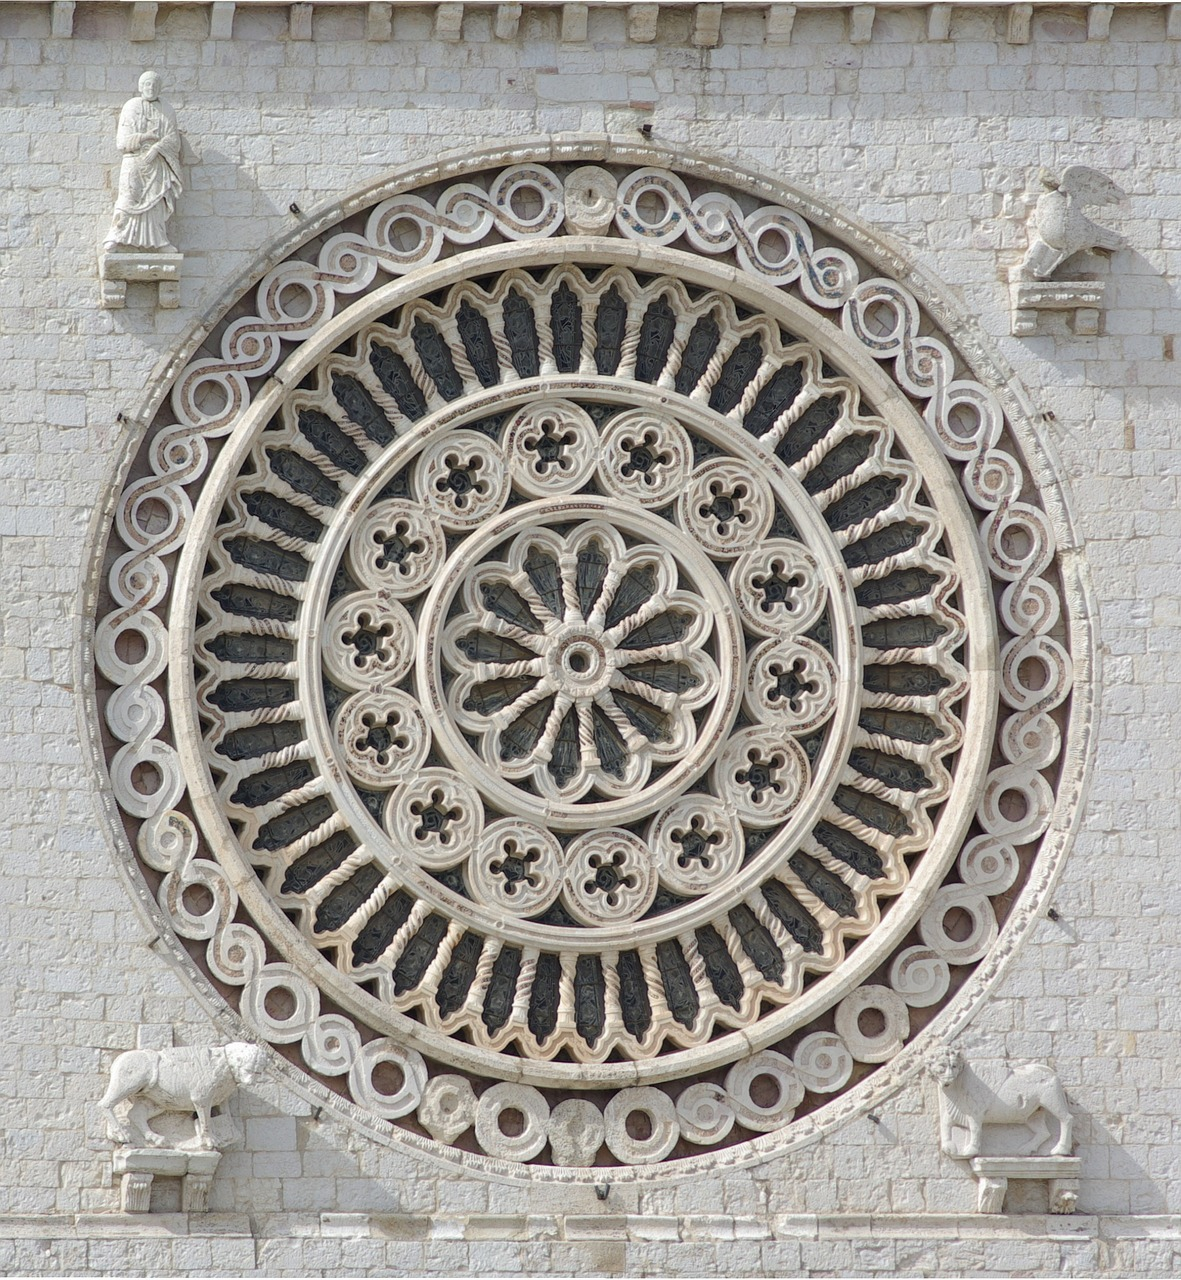 Basilica Rose Window in Assisi